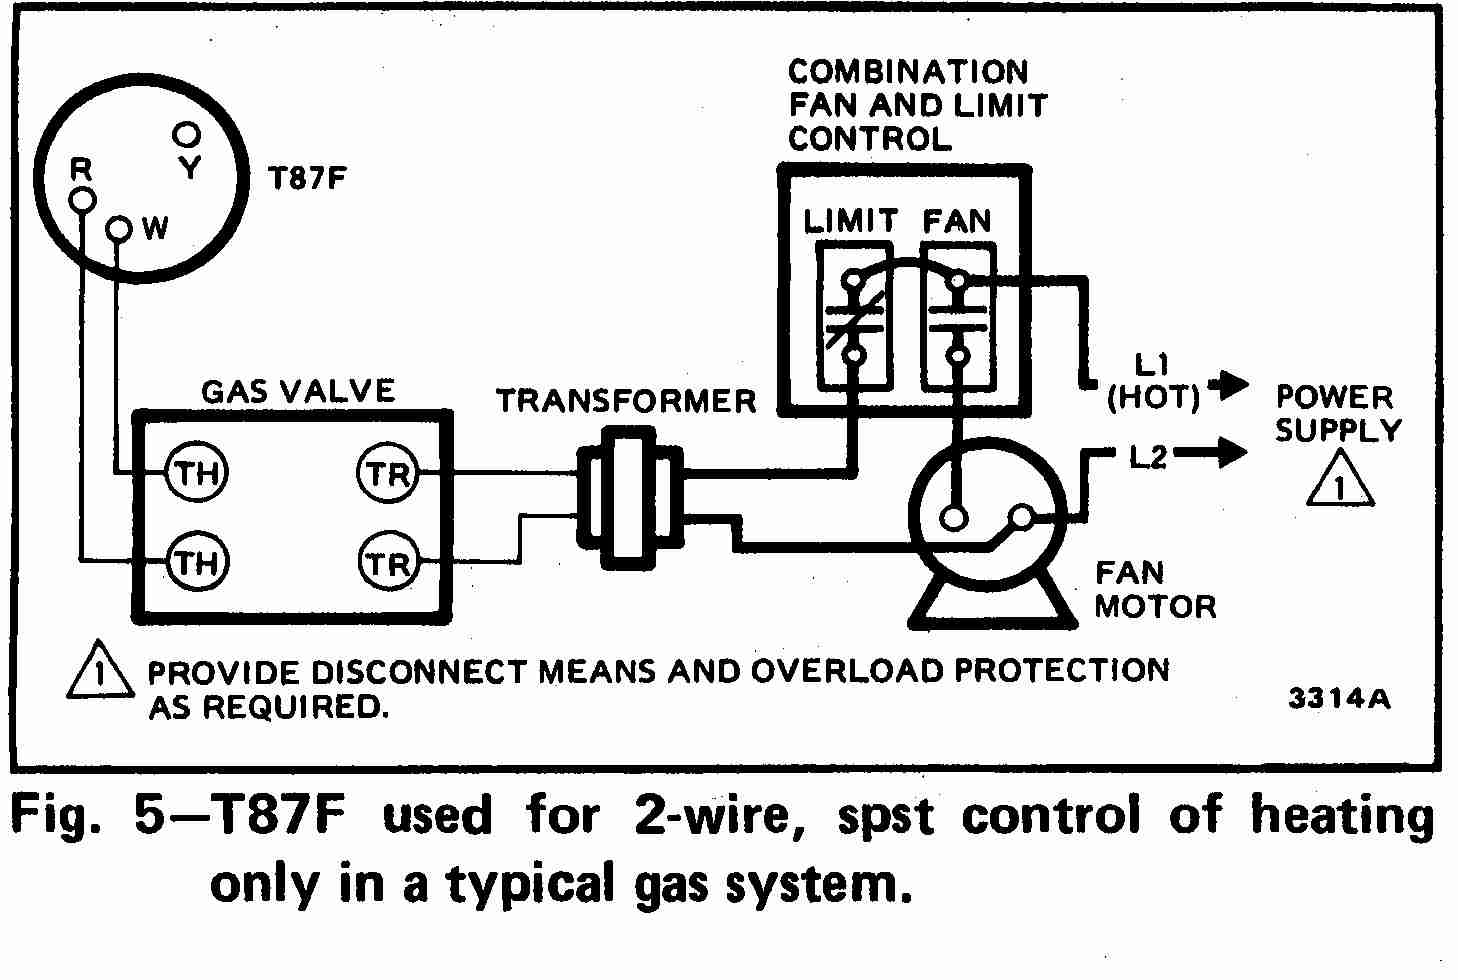 TT_T87F_0002_2Wg_DJF guide to wiring connections for room thermostats 2 wire thermostat wiring diagram heat only at mifinder.co